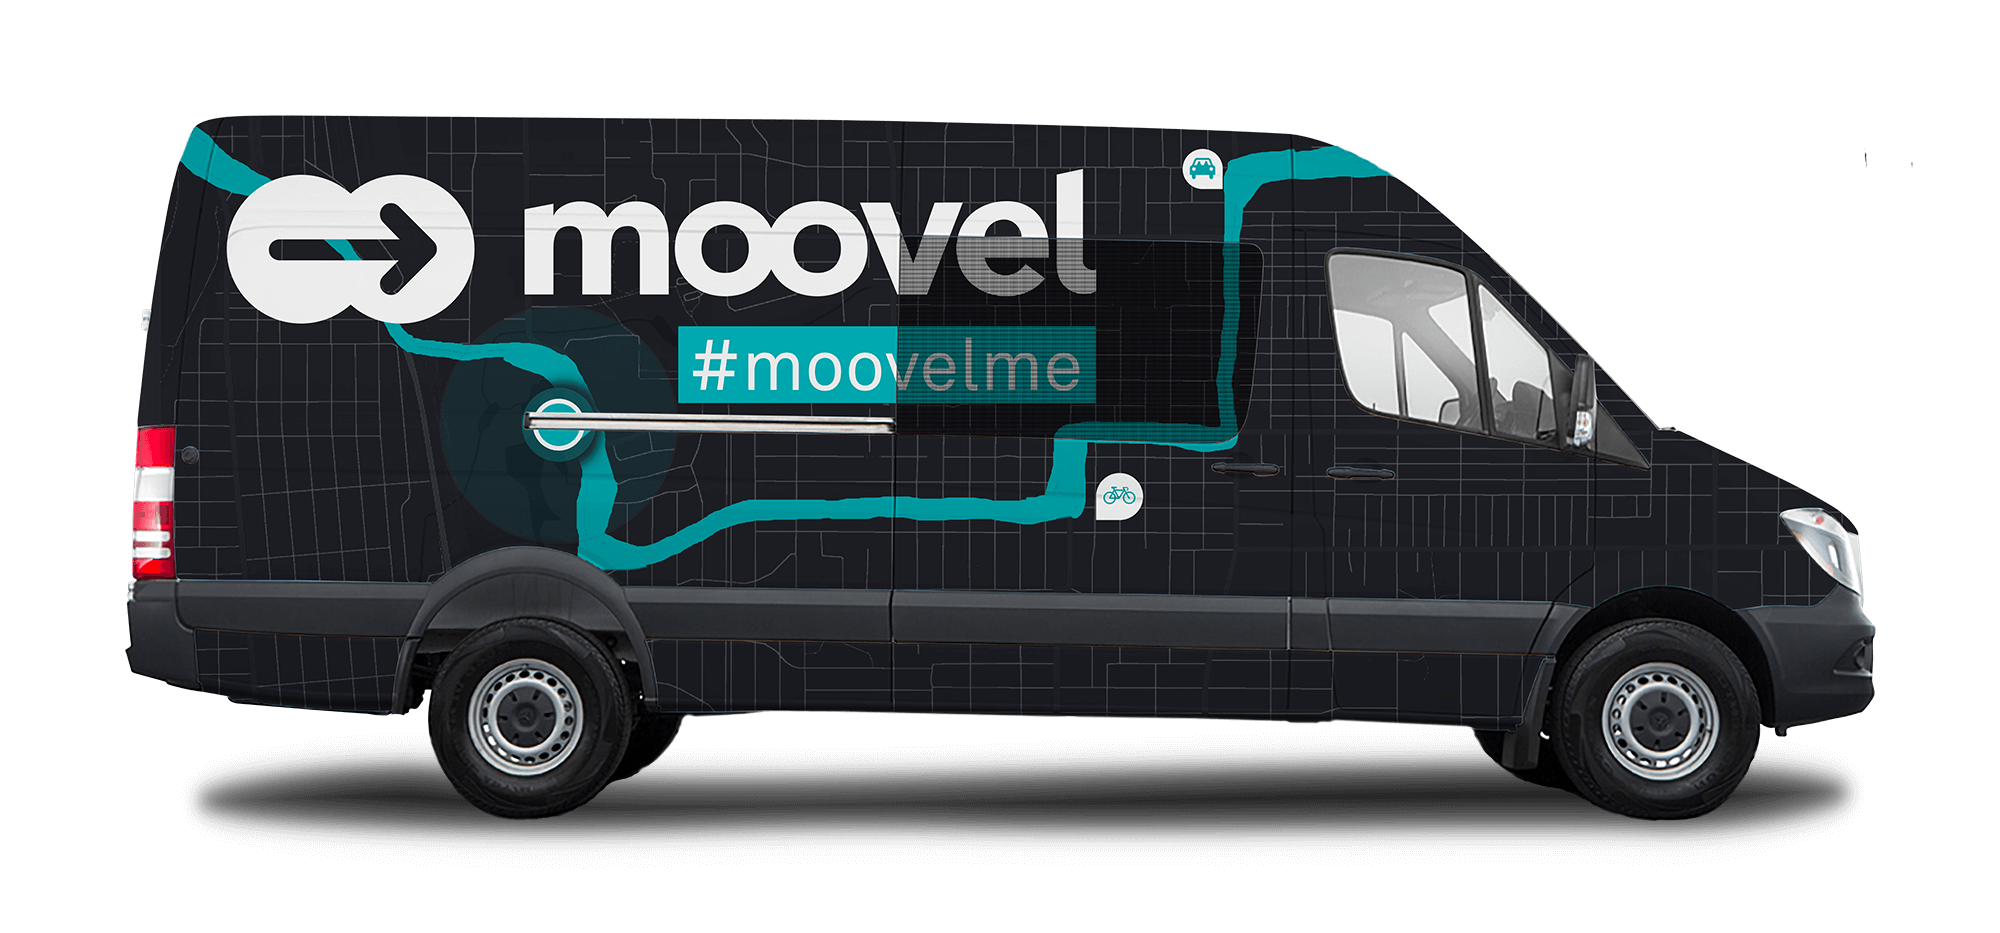 "Moovel SXSW ""Future of Urban Mobility"" Event, van wrap example"